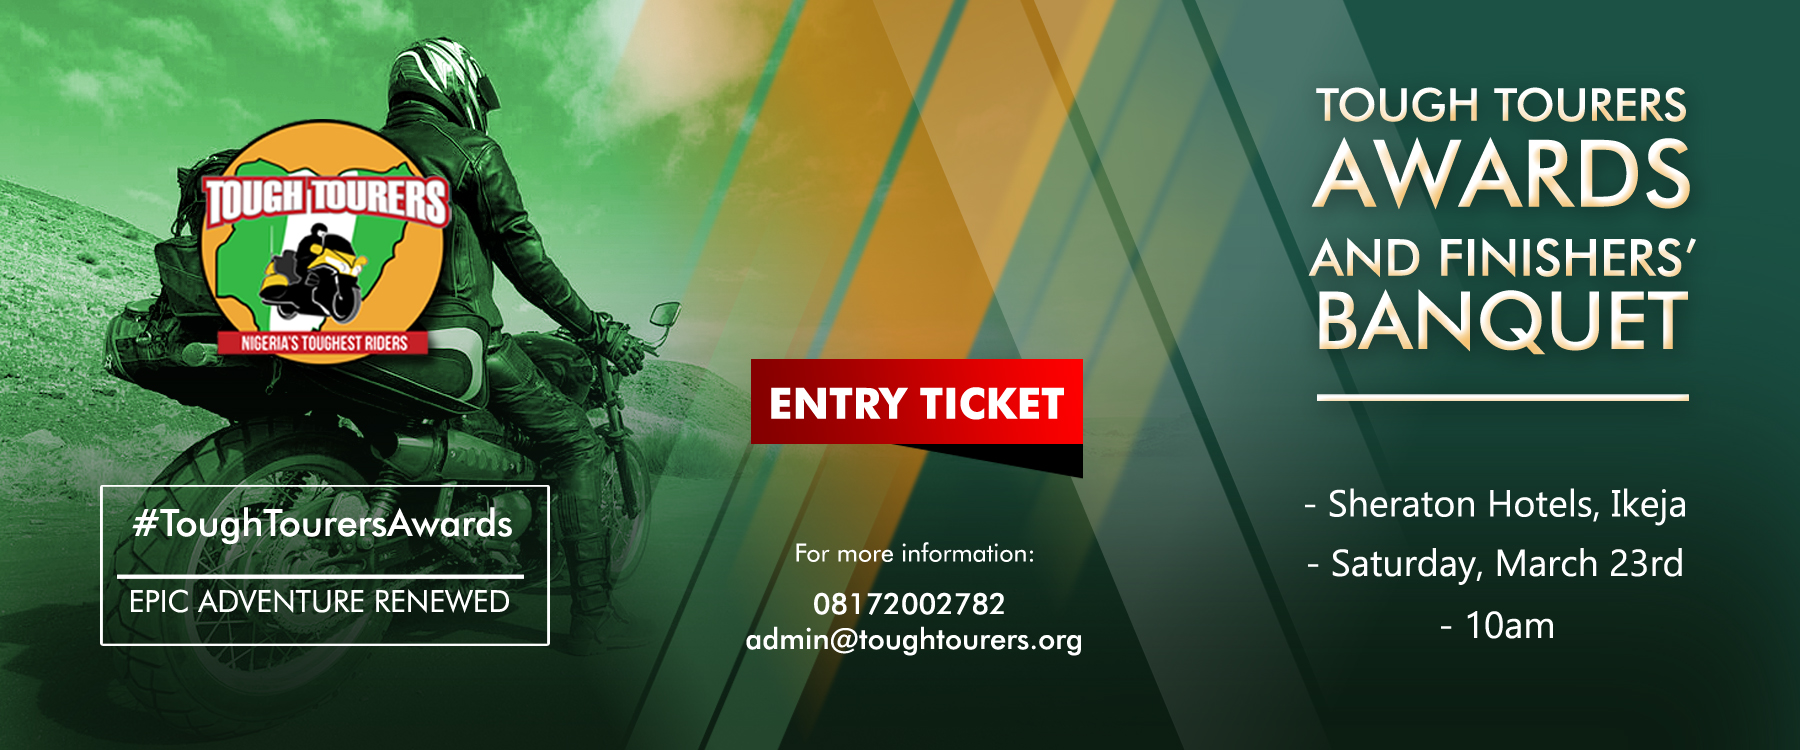 Tough Tourers Awards and Finishers' Banquet – A celebration of Nigeria's Toughest Riders!